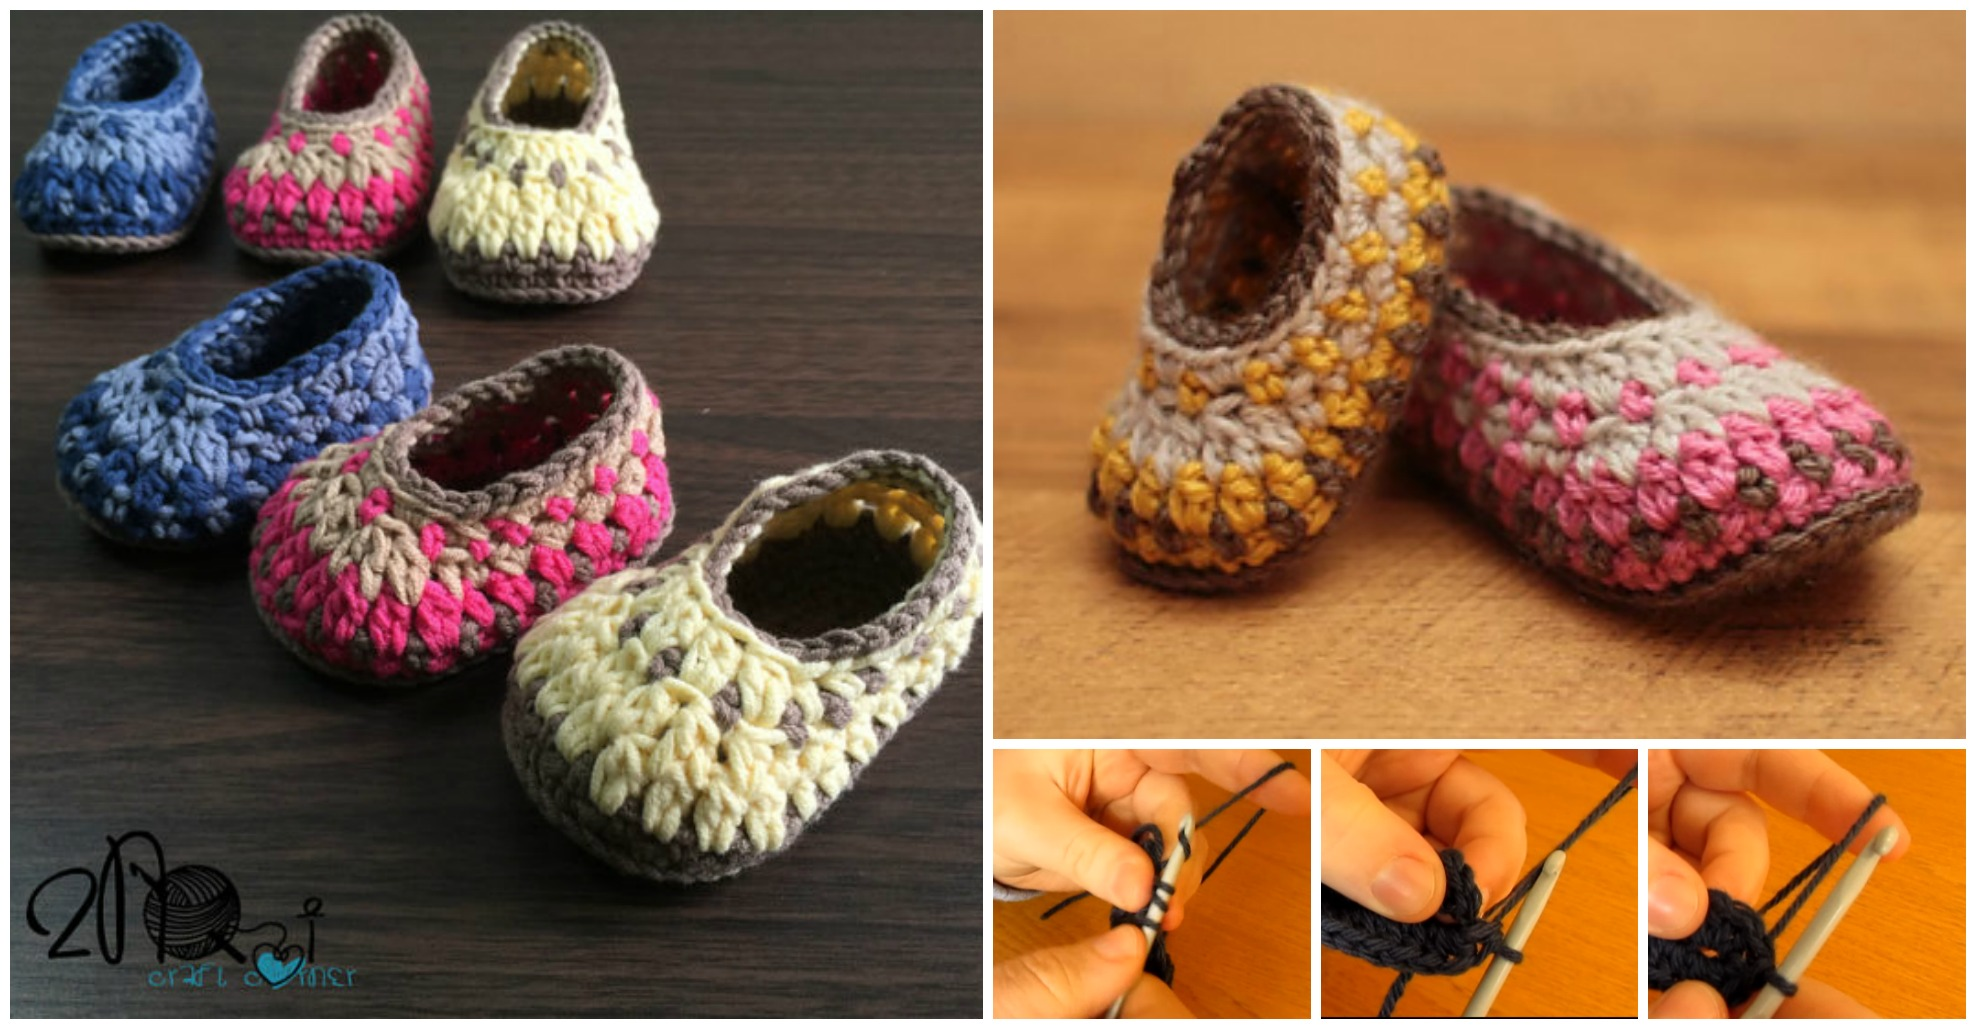 Crochet Archives - Page 57 of 87 - Pretty Ideas